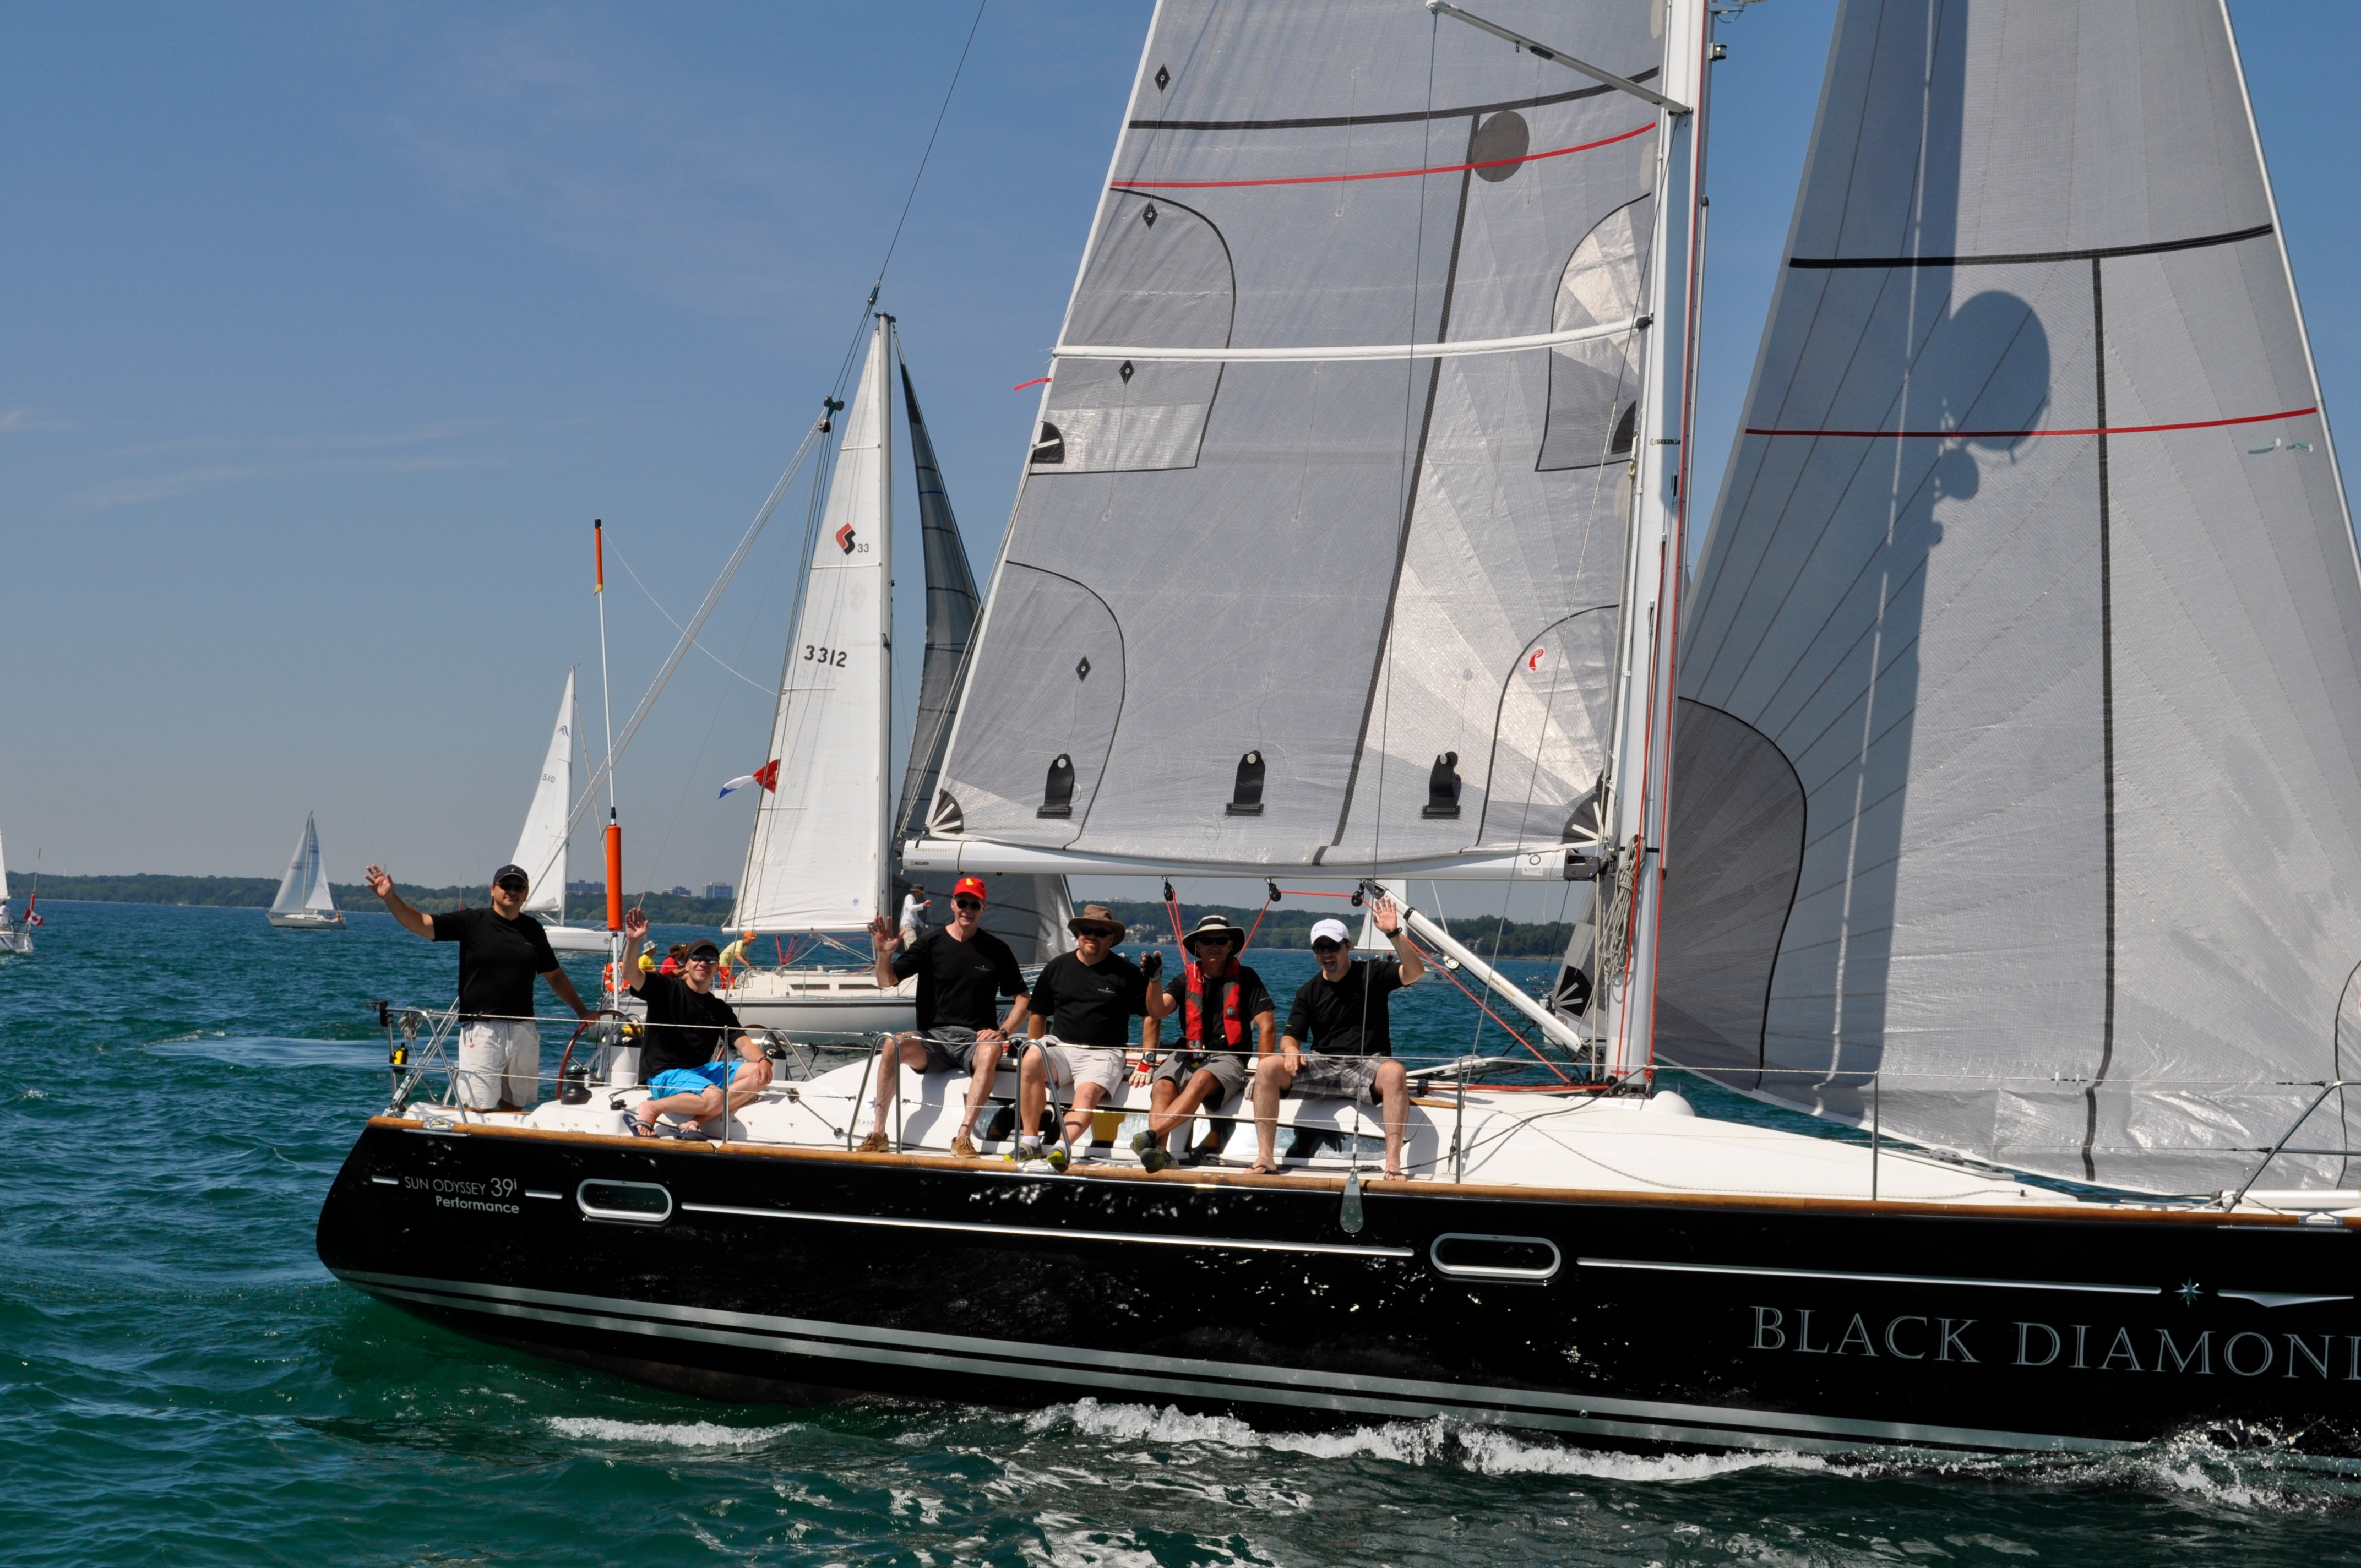 2013 Lake Ontario 300 Yacht Race (LO300)